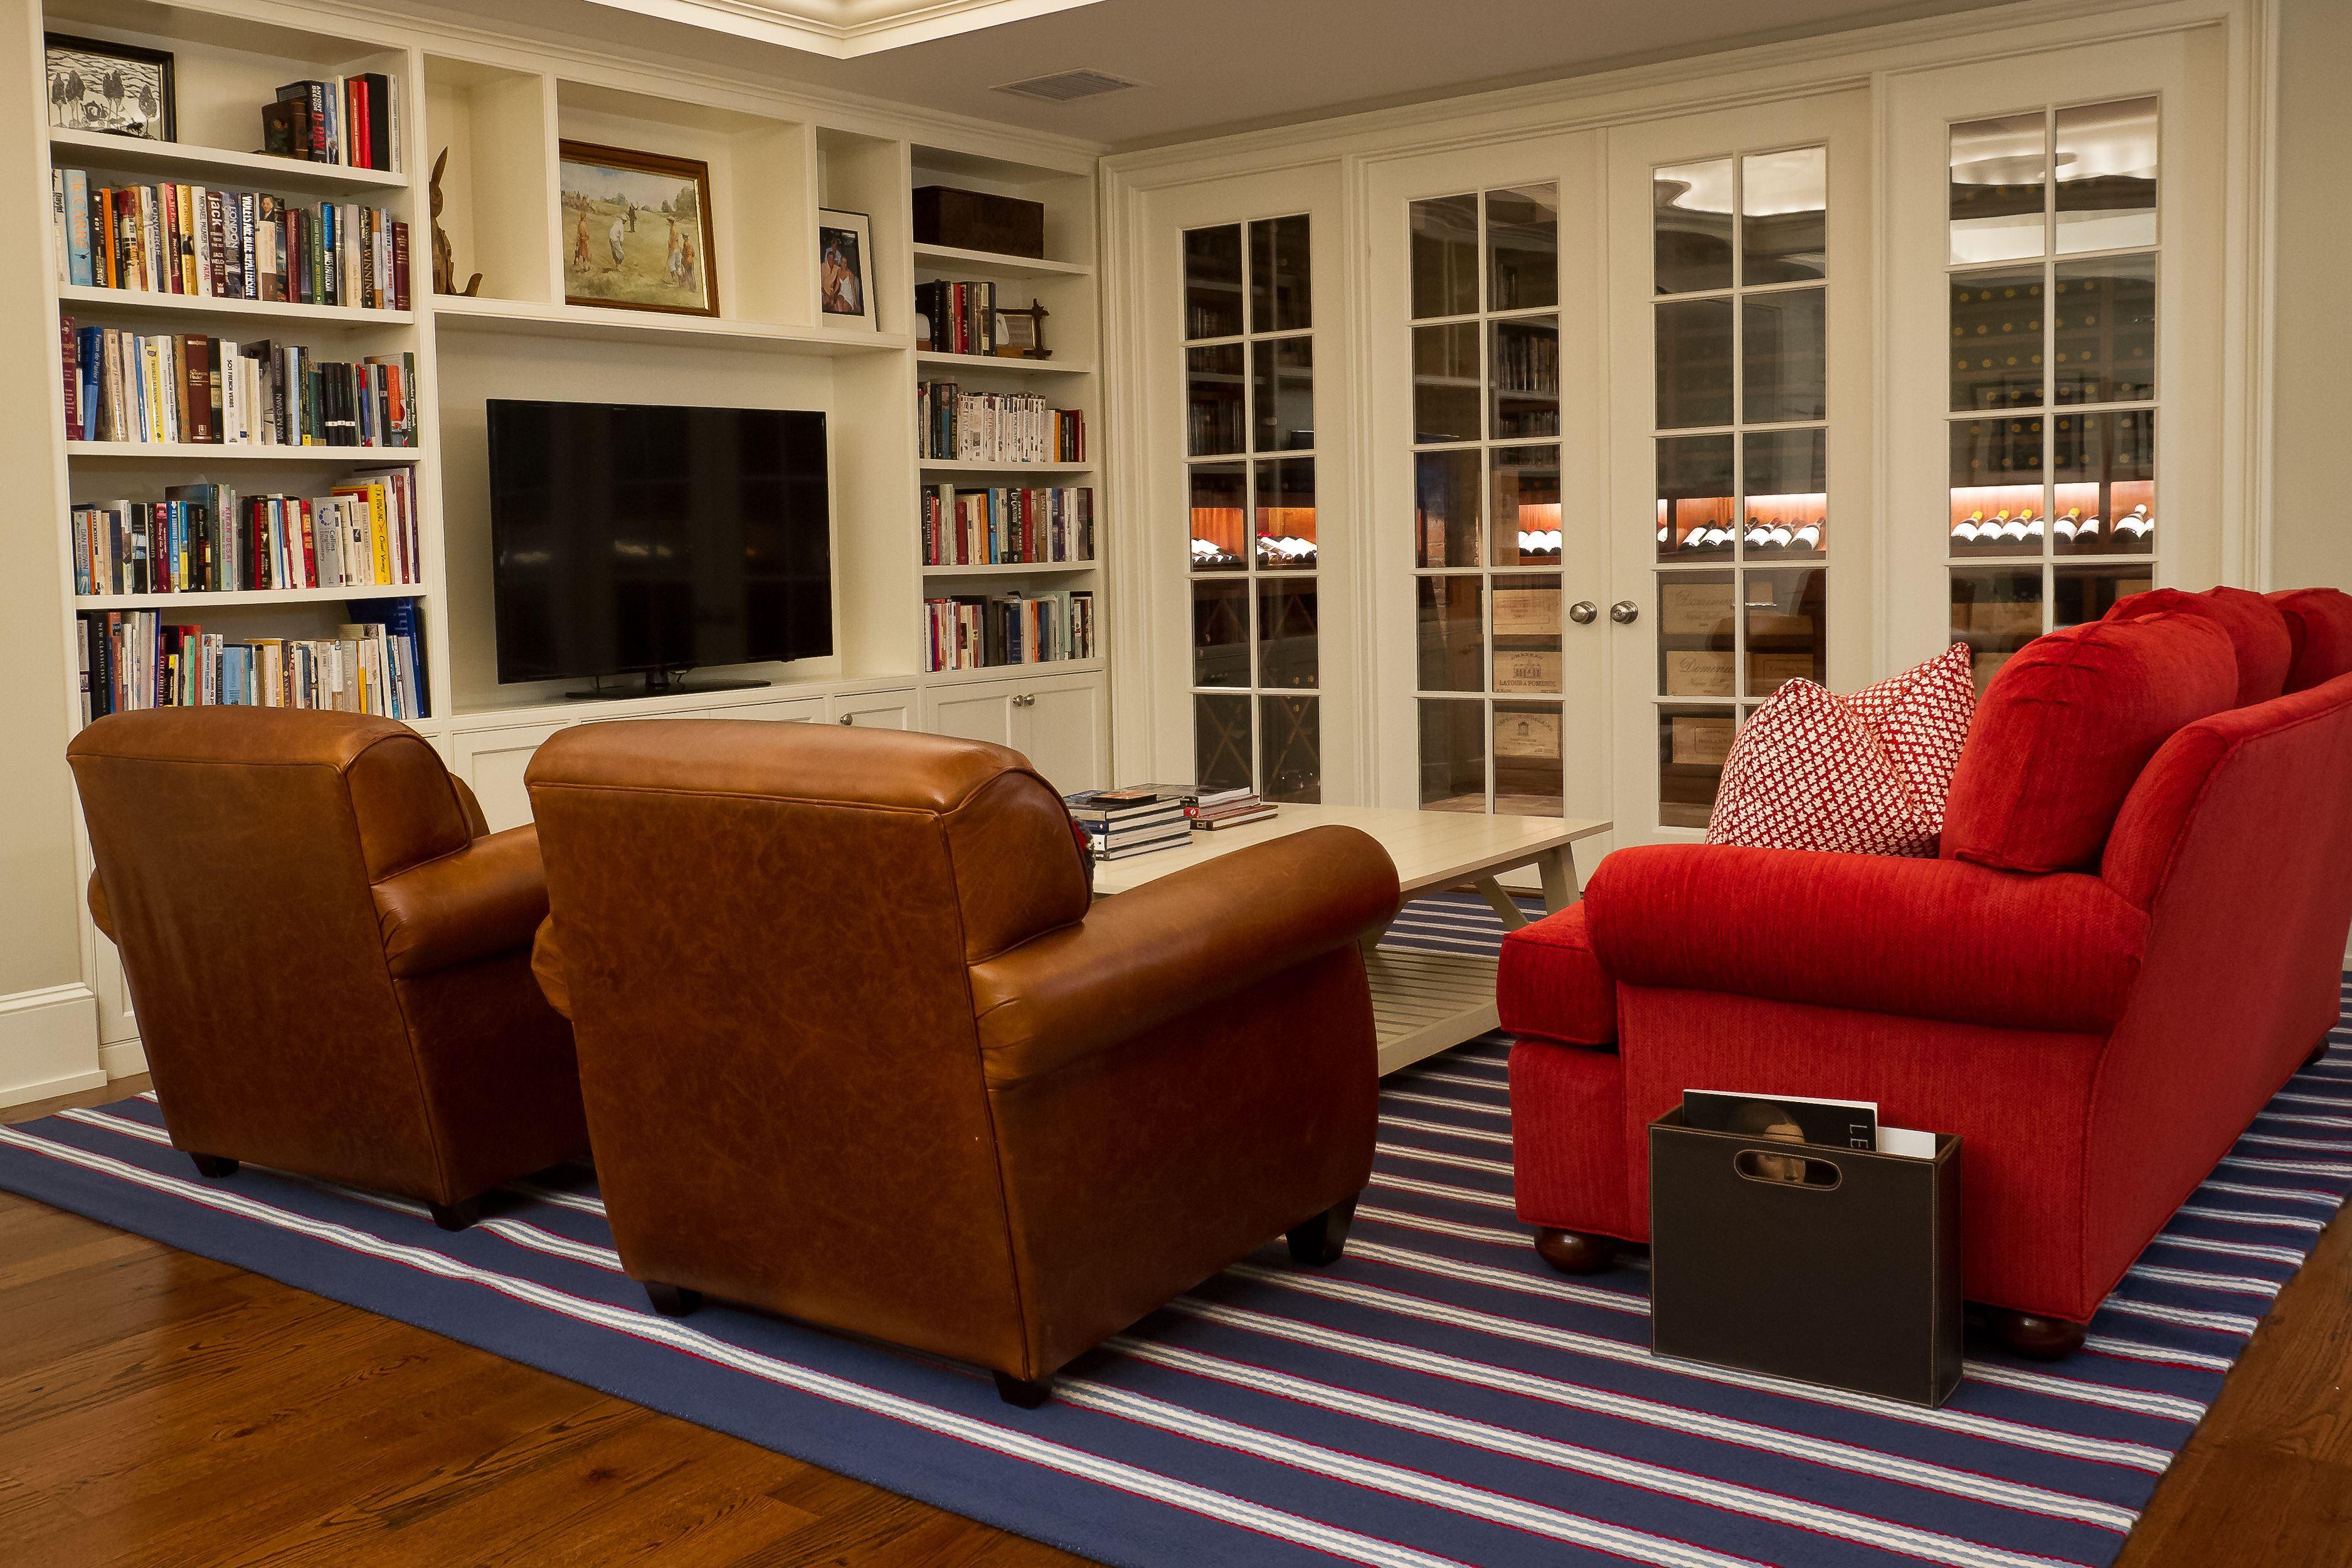 Nautical Themed Living Room With Red Couch And Double Leather